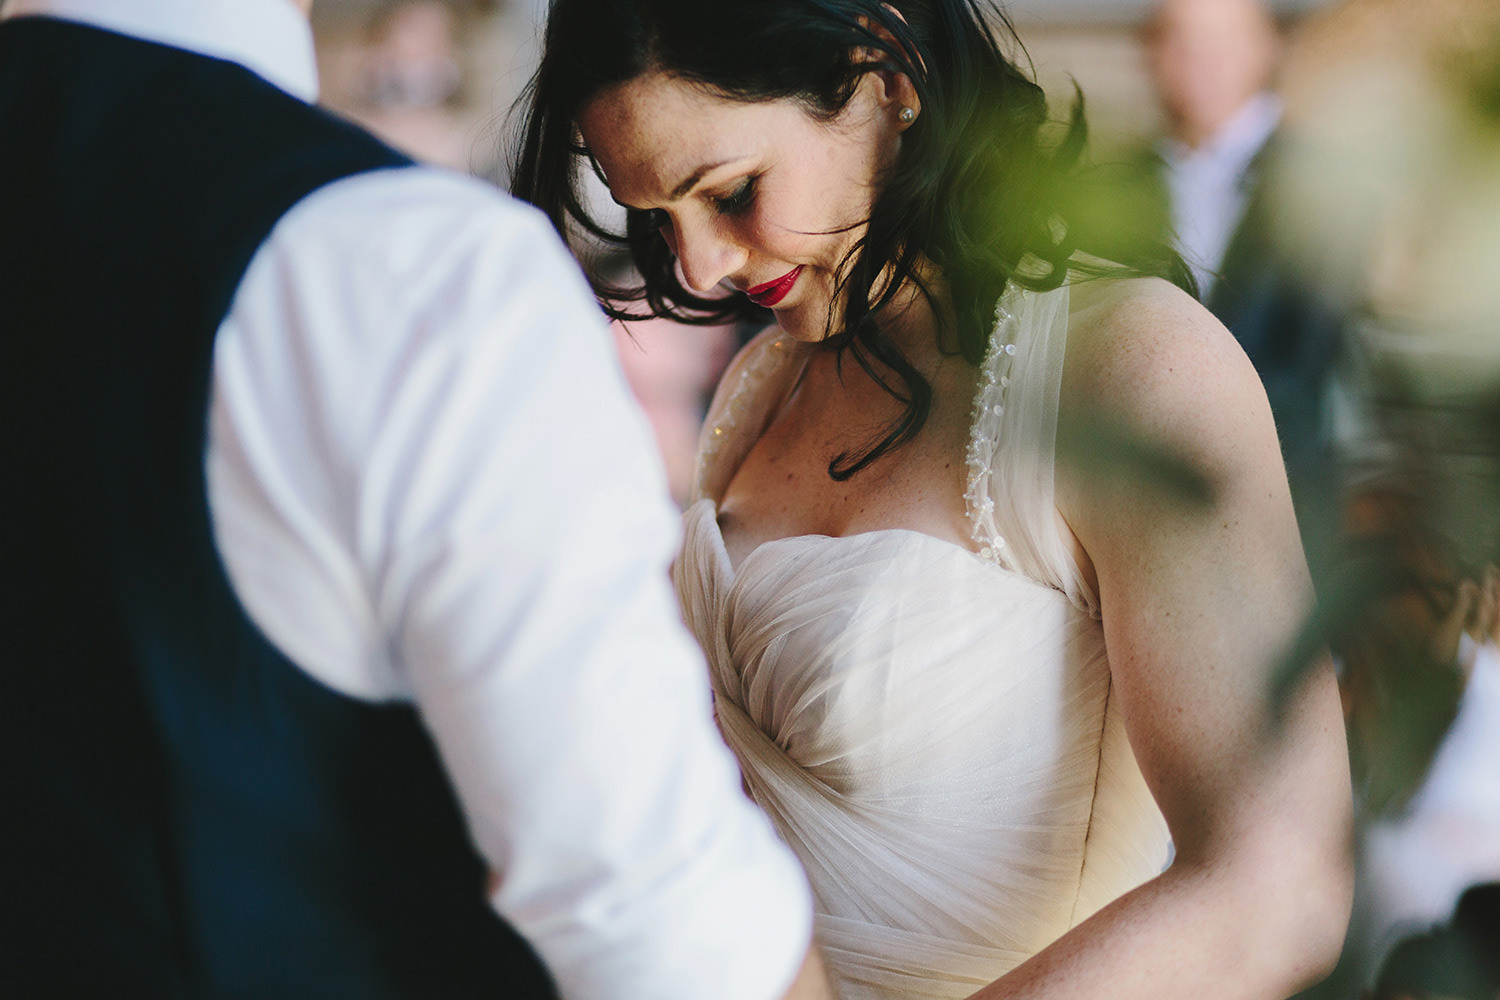 Melbourne_Winery_Wedding_Chris_Merrily095.JPG